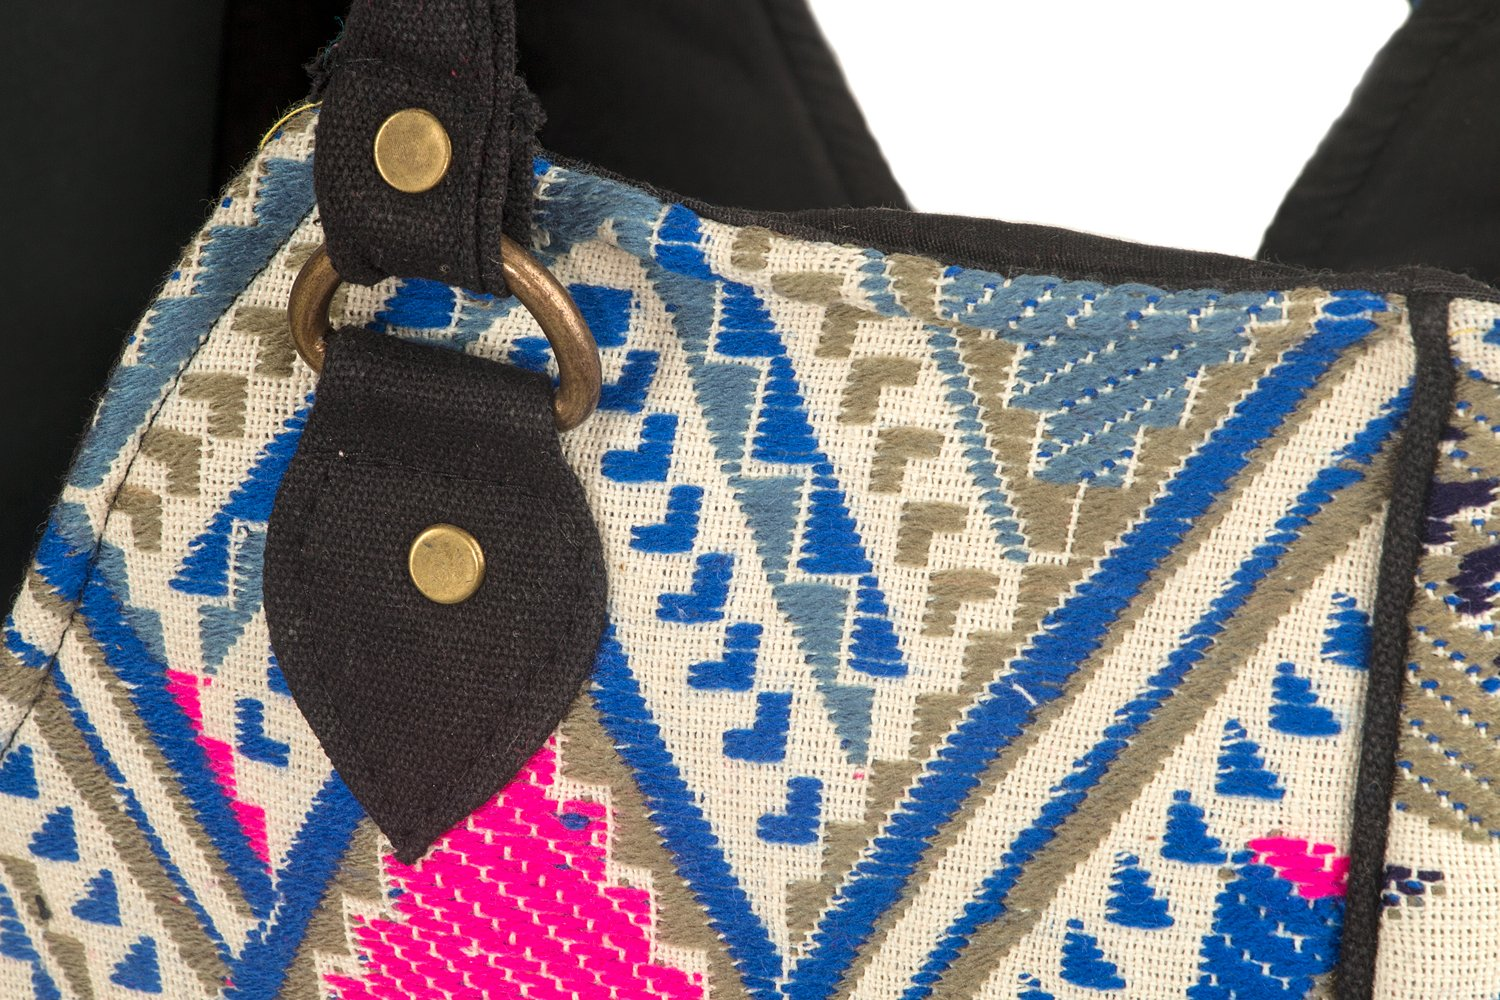 Woven-Women-Tote-Blue-Large-Shoulder-Bag-Beach-Summer-Fashion-Spring-School-Every-day-Floral-Geometric